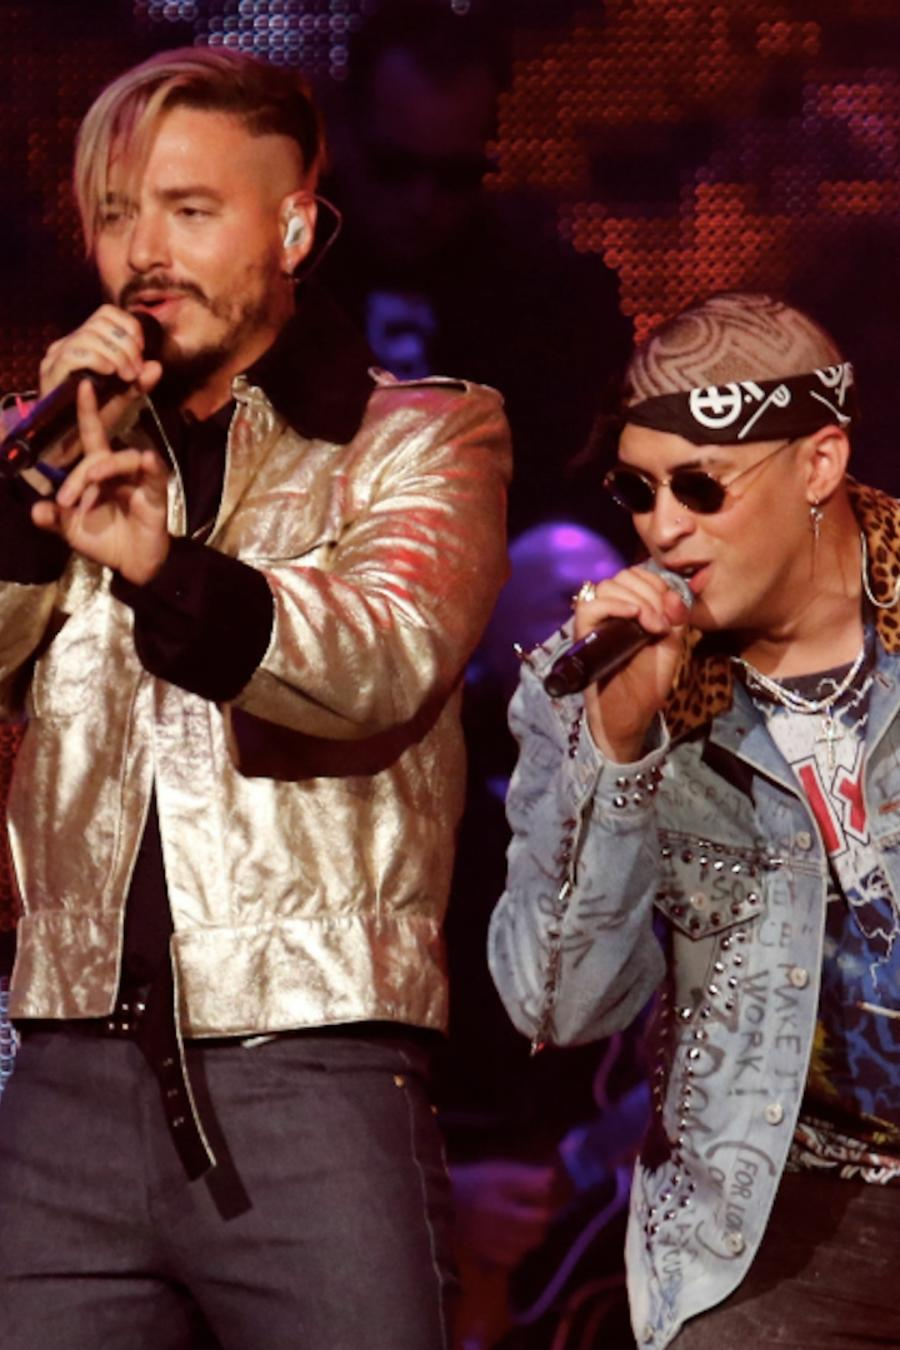 J Balvin and Bad Bunny in concert